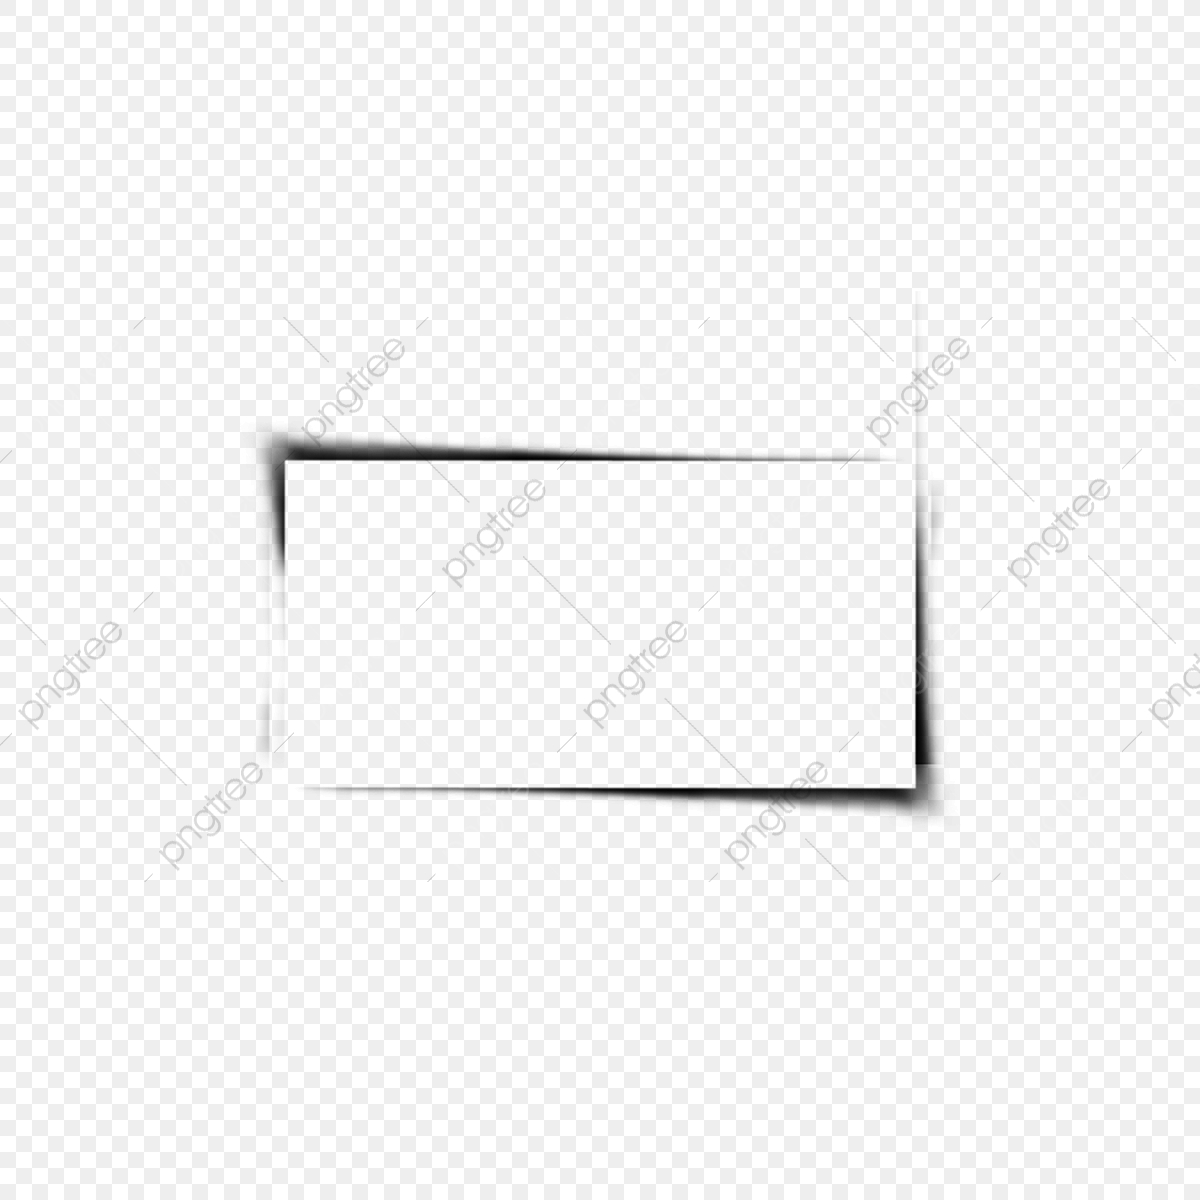 Rectangle Png Vector Psd And Clipart With Transparent Background For Free Download Pngtree Search and download free hd rectangle png images with transparent background online from lovepik.com. https pngtree com freepng simple ink rectangle frame element 3692467 html